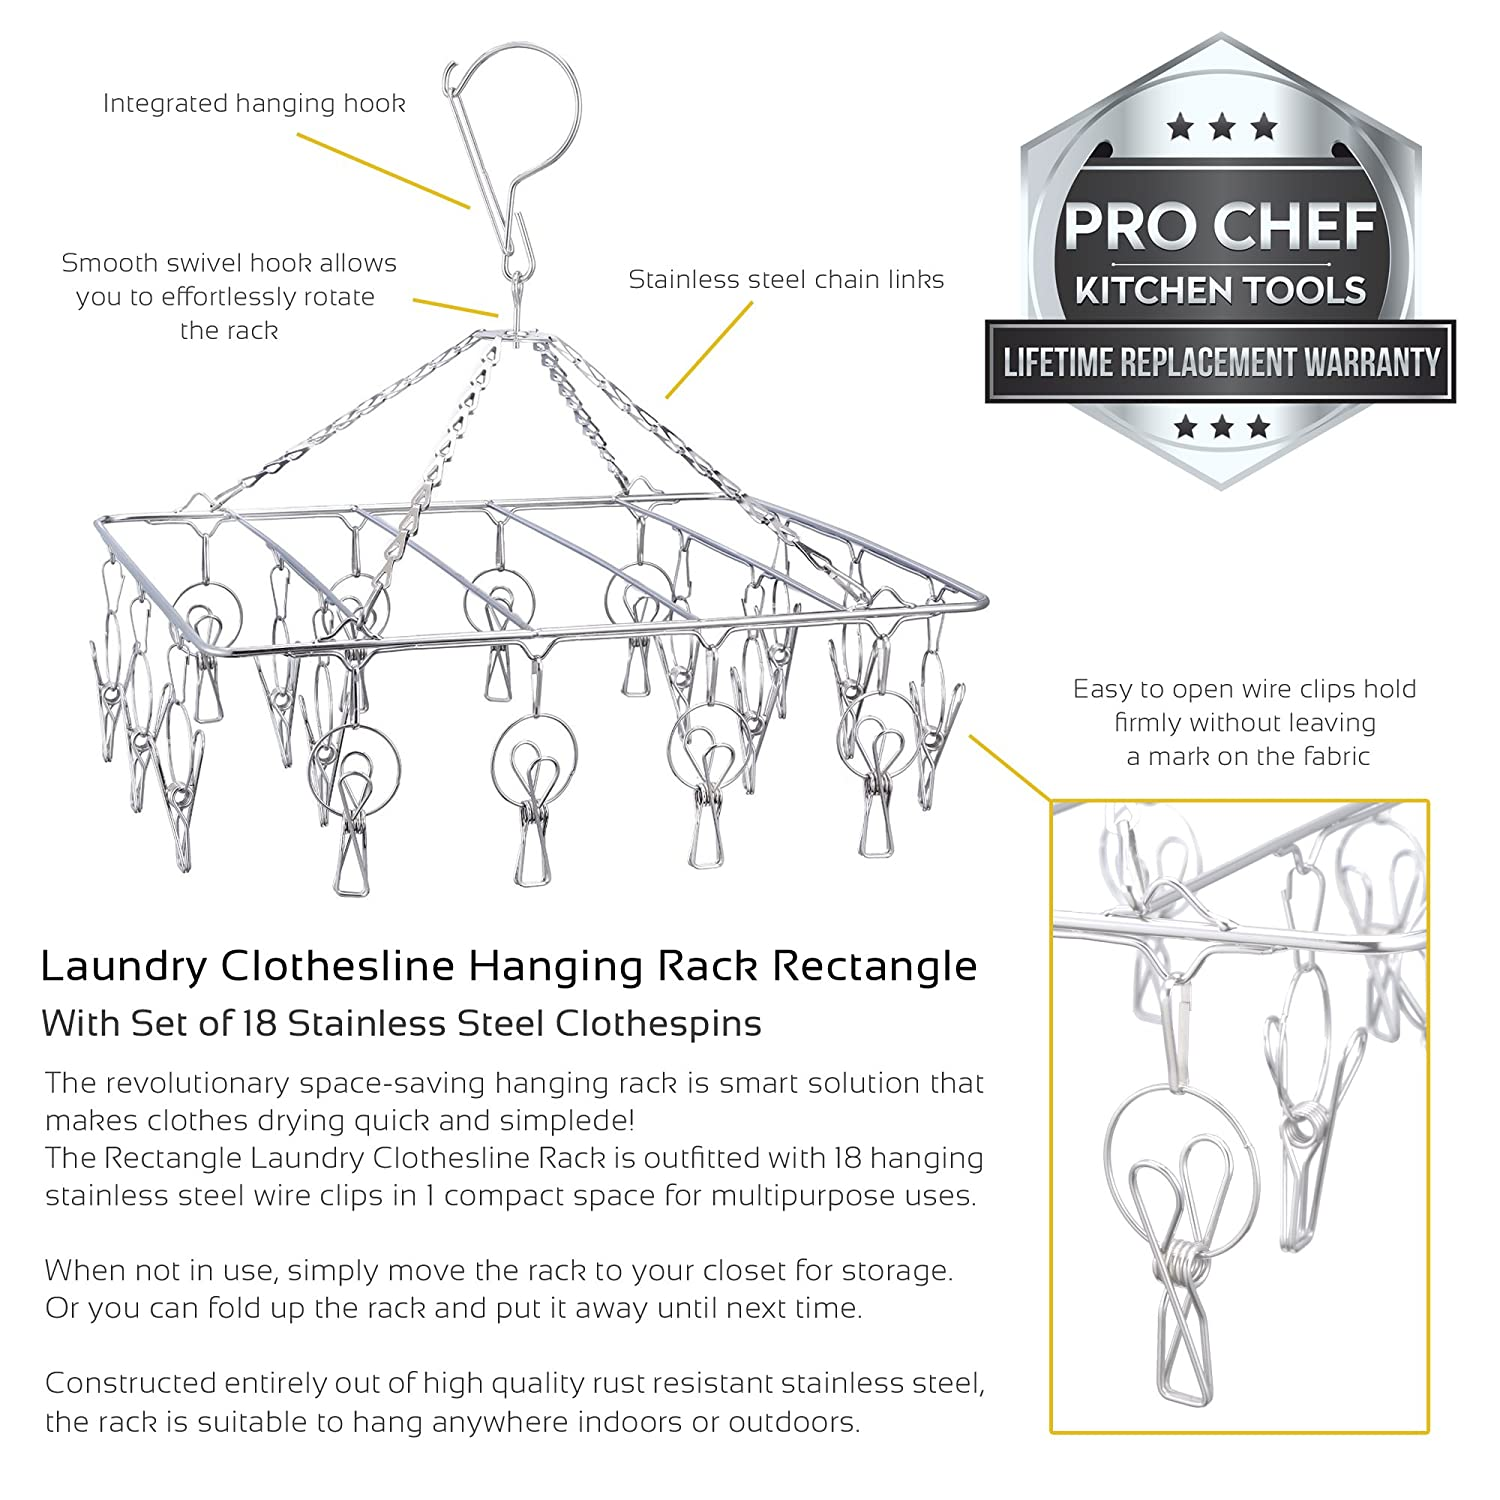 Pro Chef Kitchen Tools Clothes Drying Racks For Laundry Rapid Electric Dryer Wiring Diagram Stand Rectangle Clothing Rack Portable Clothesline Includes 18 Metal Clothespins Clips Set